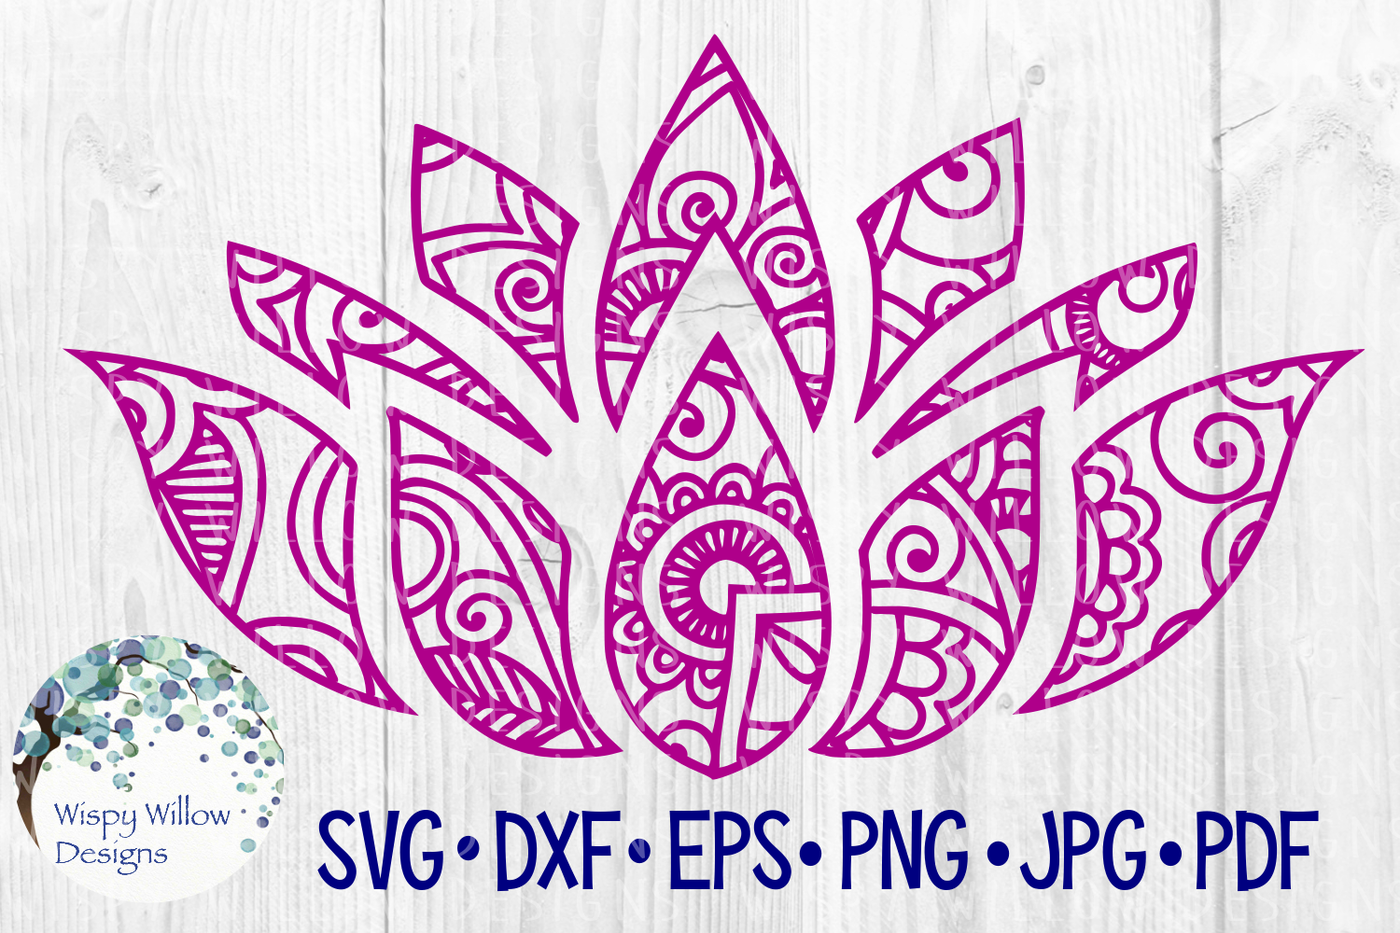 Lotus Flower Zentangle Mandala Peace Svg Dxf Eps Png Jpg Pdf By